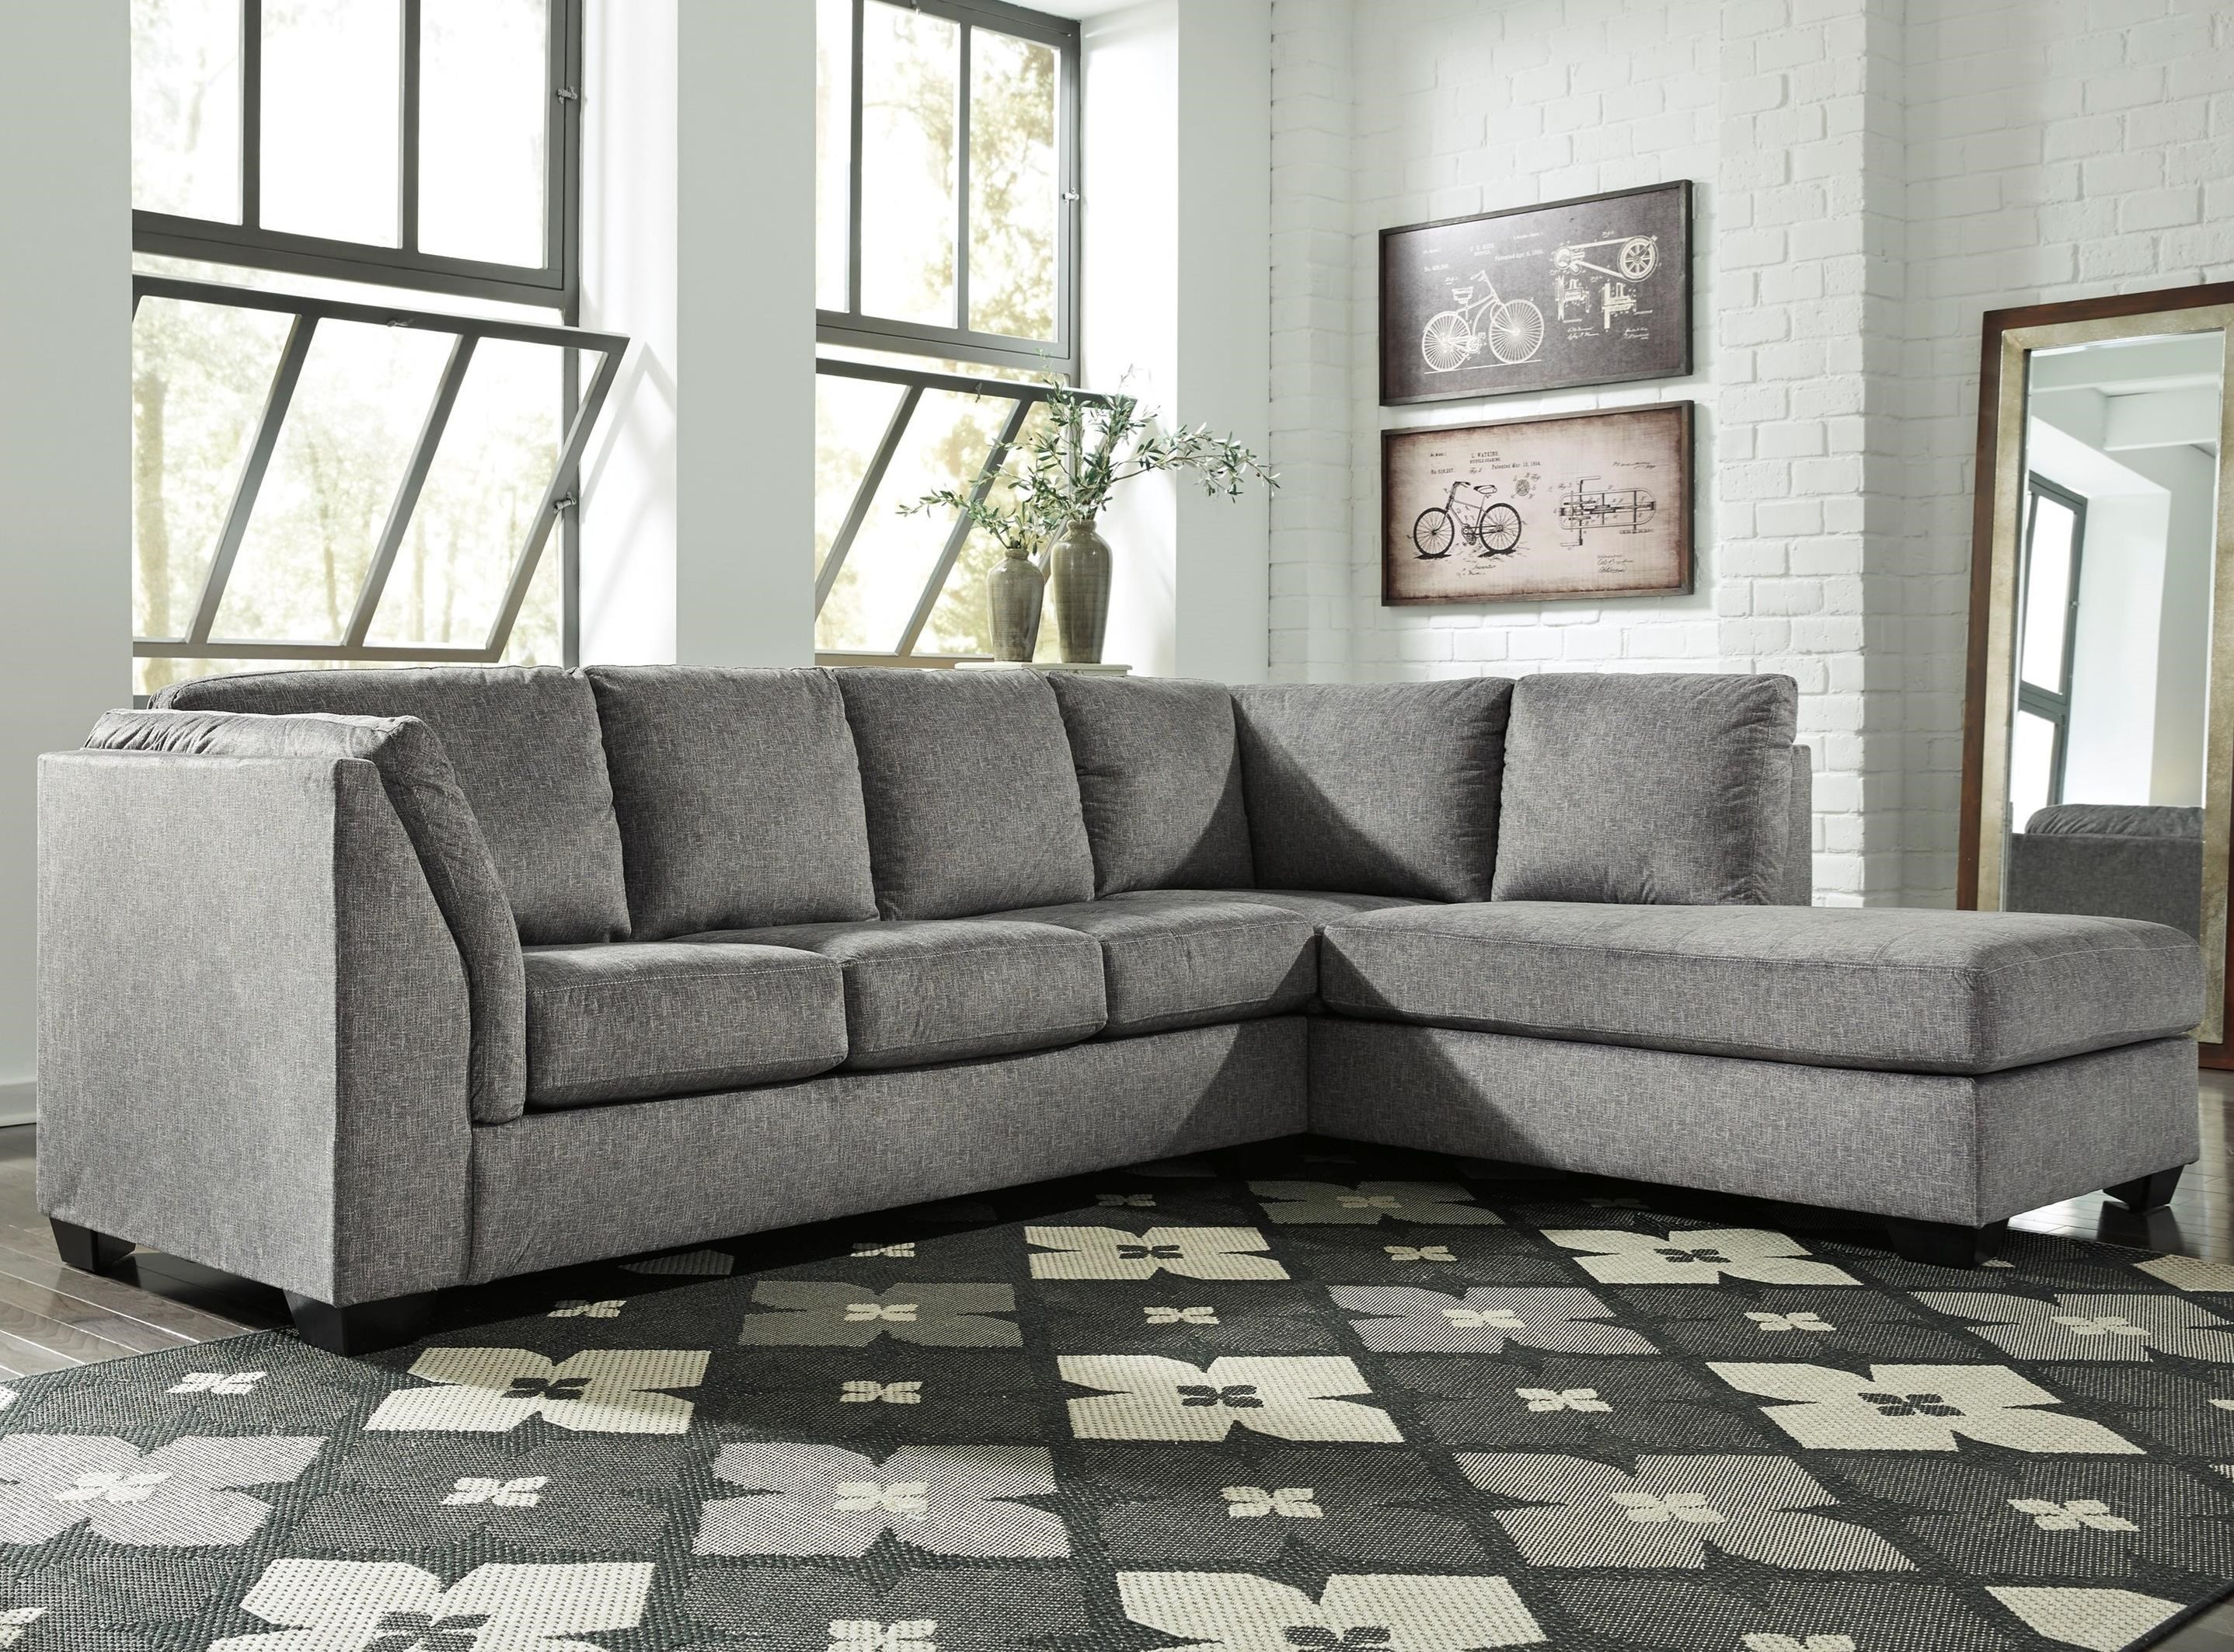 Benchcraft Belcastel 2 Piece Sectional With Right Chaise U0026 Sleeper Sofa In  Gray Fabric